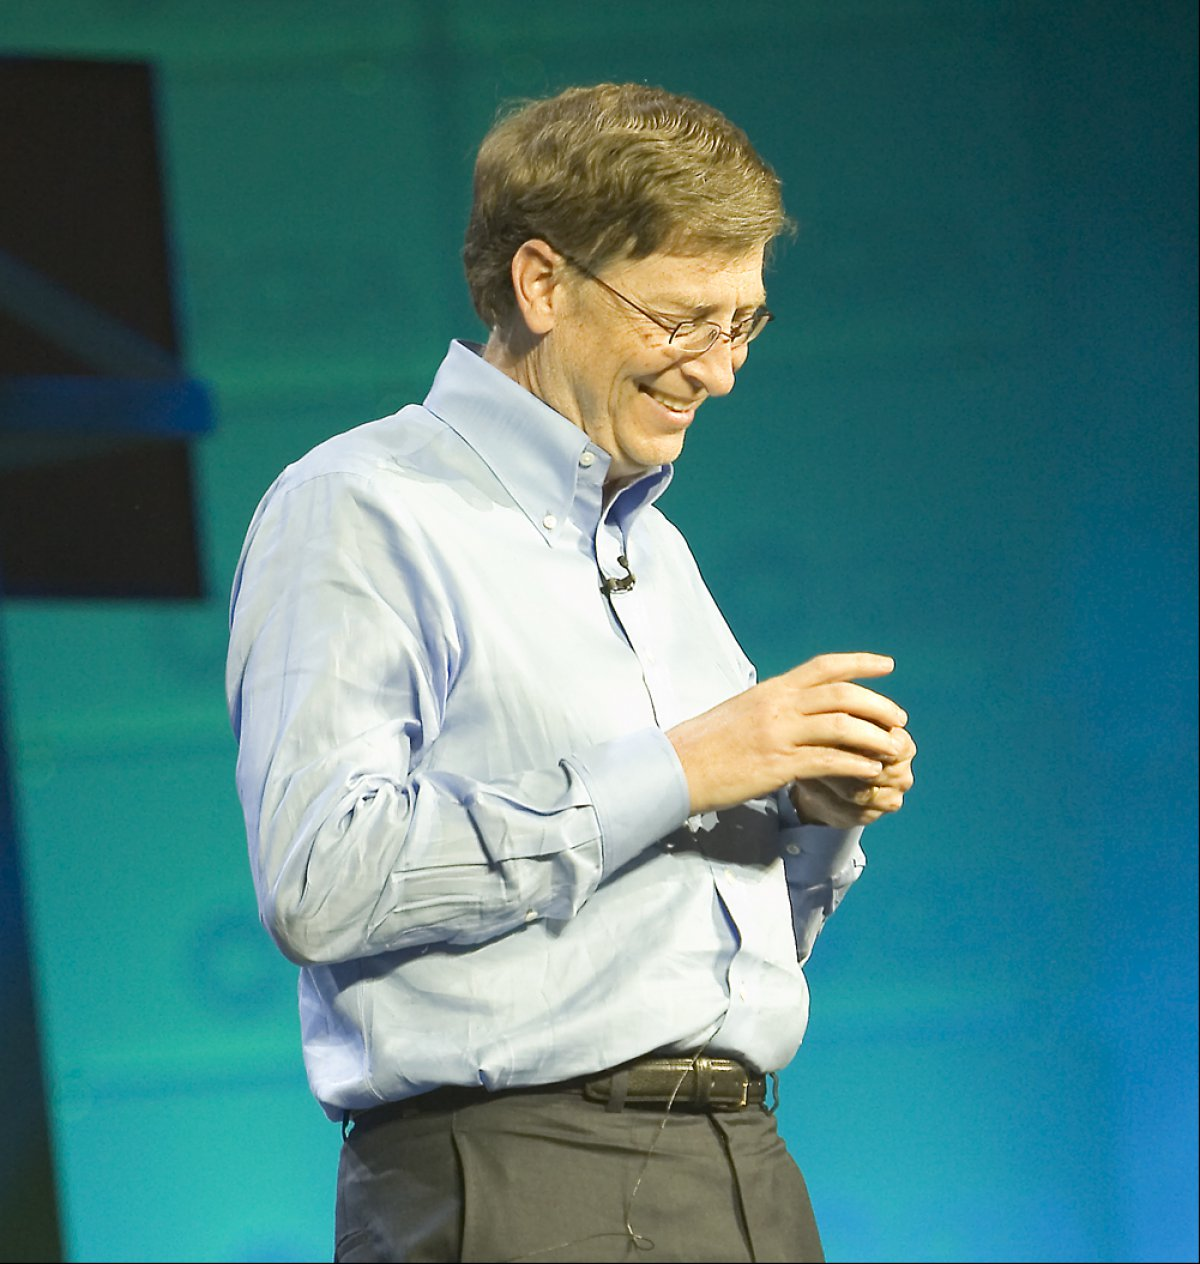 Bill Gates gets 'blue screen of death' during trade show